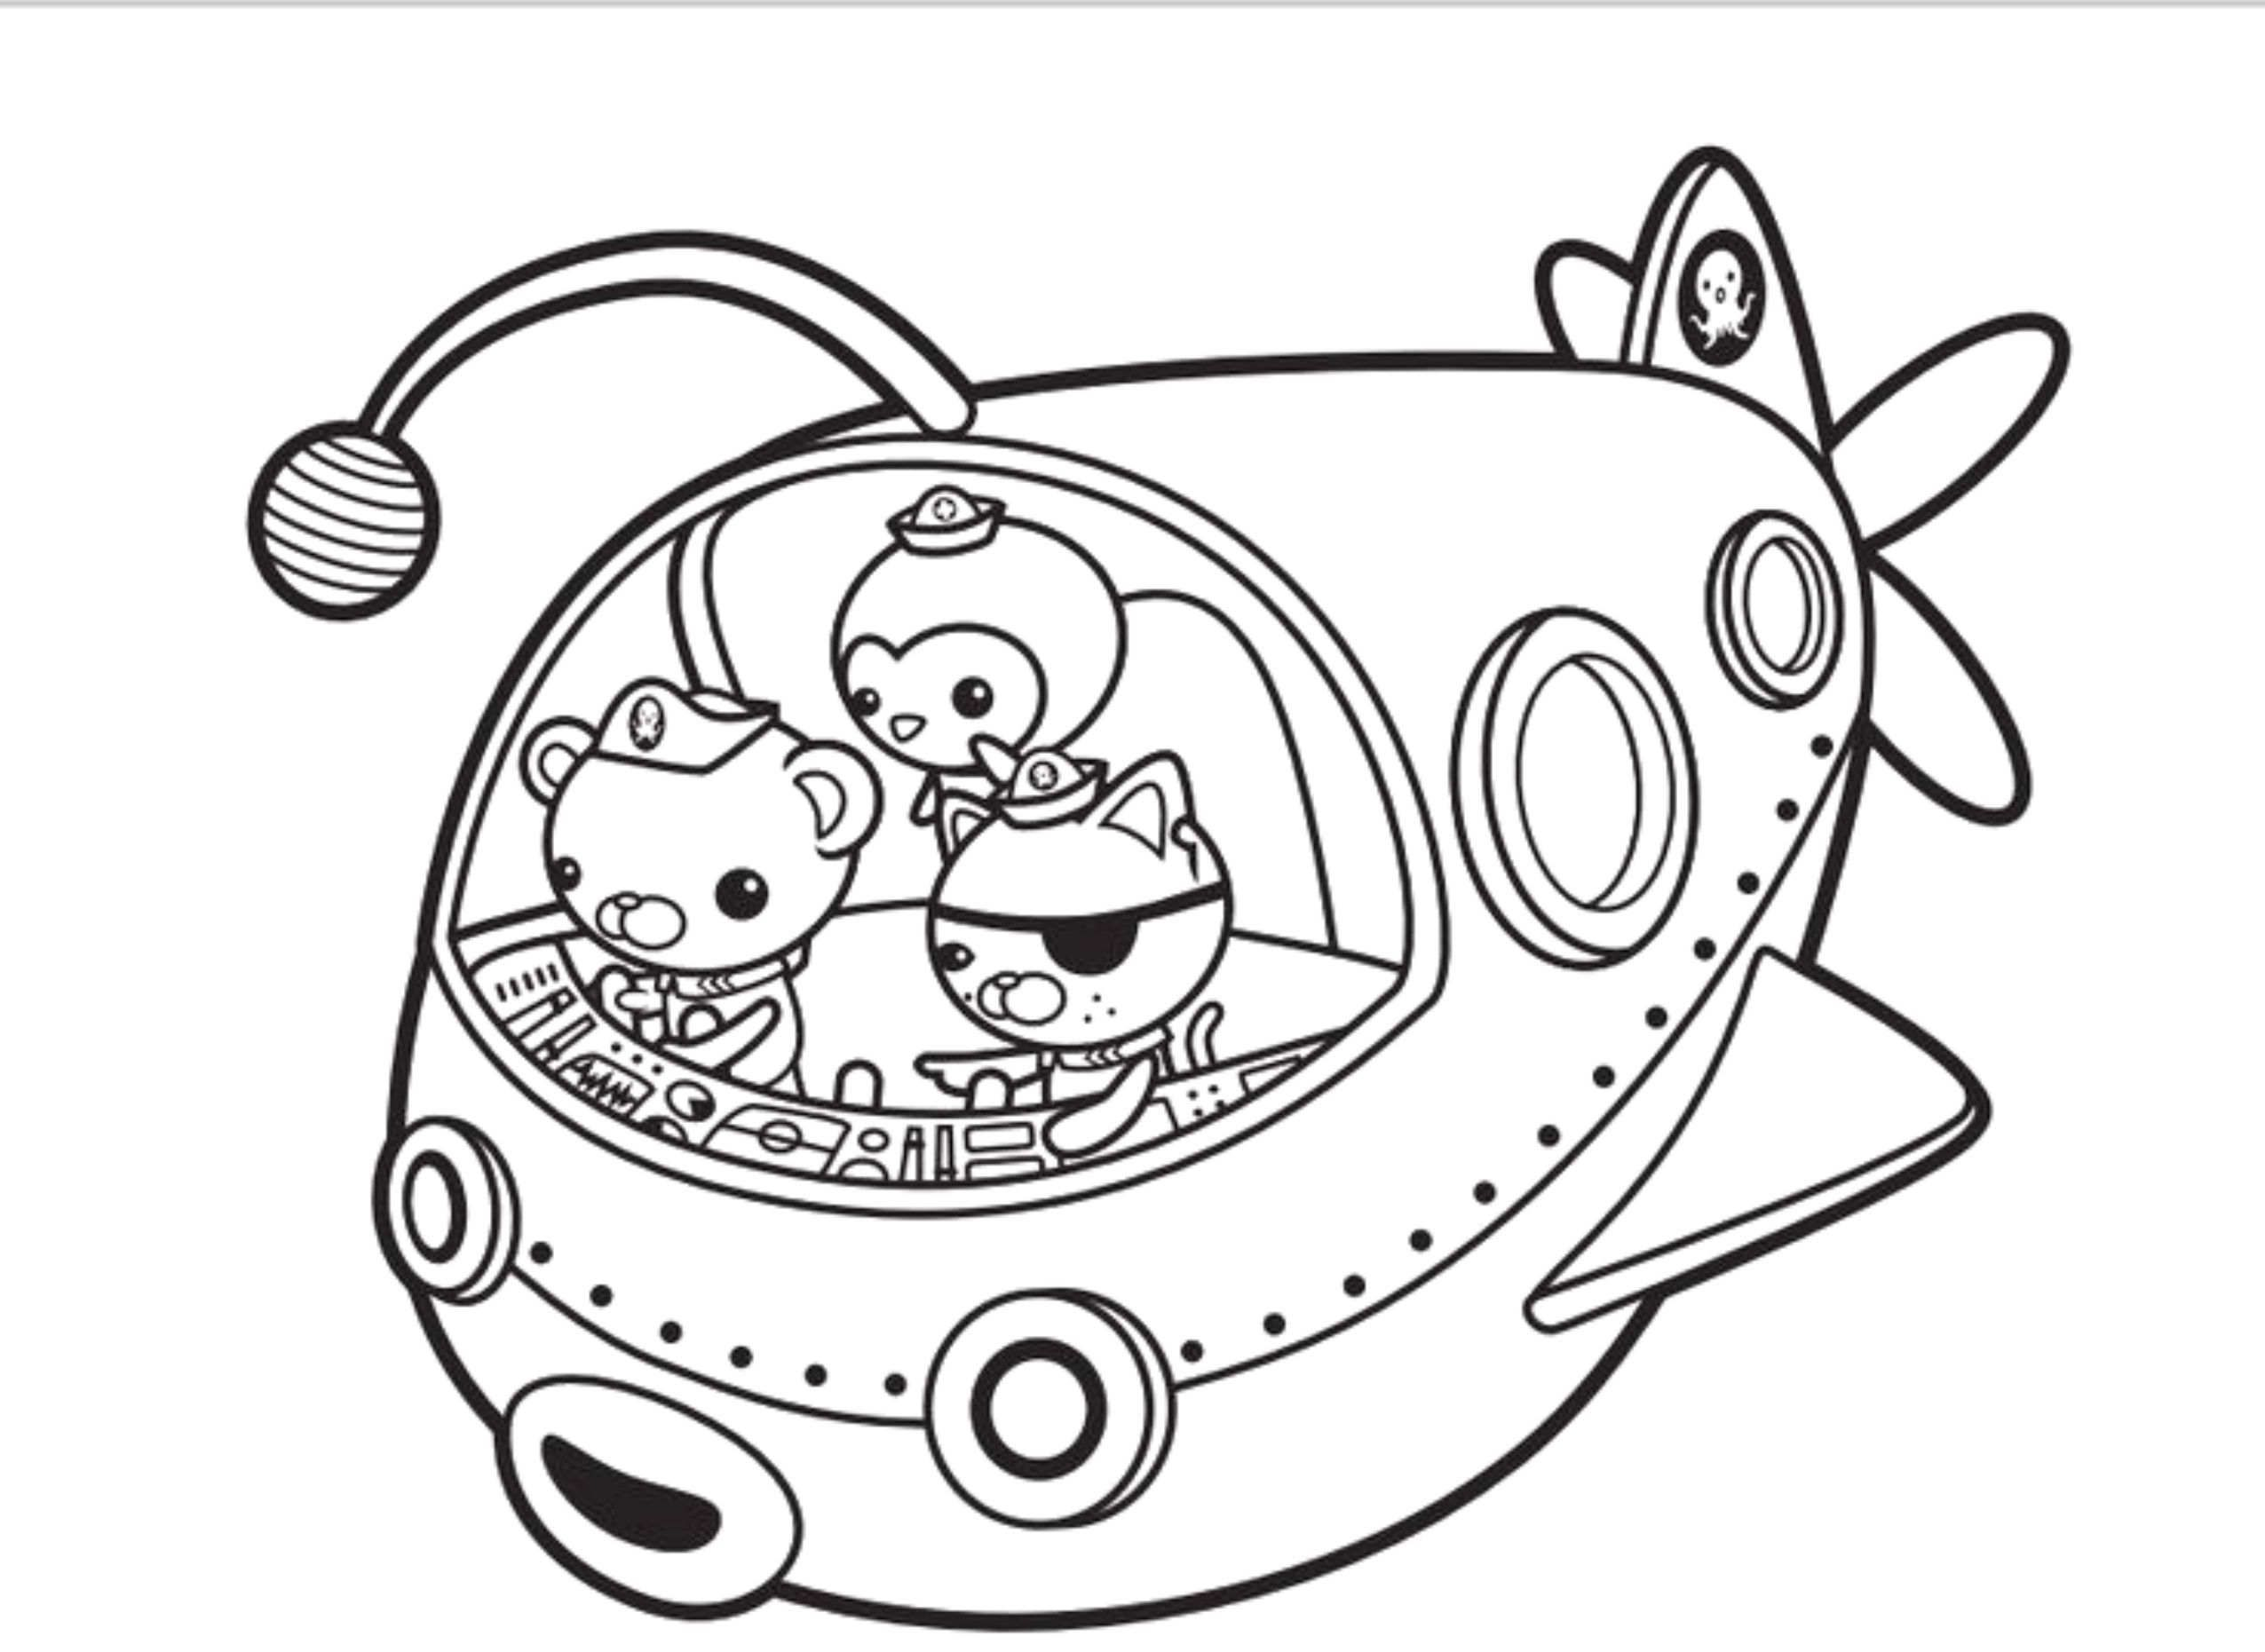 Octonauts Coloring Pages With Octonauts Coloring Pages Super Coloring Pages Coloring Pages Online Coloring Pages